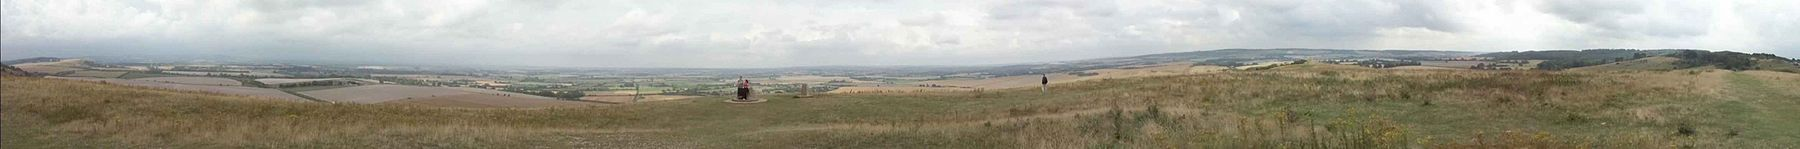 A full-circle panoramic view from Ivinghoe Beacon